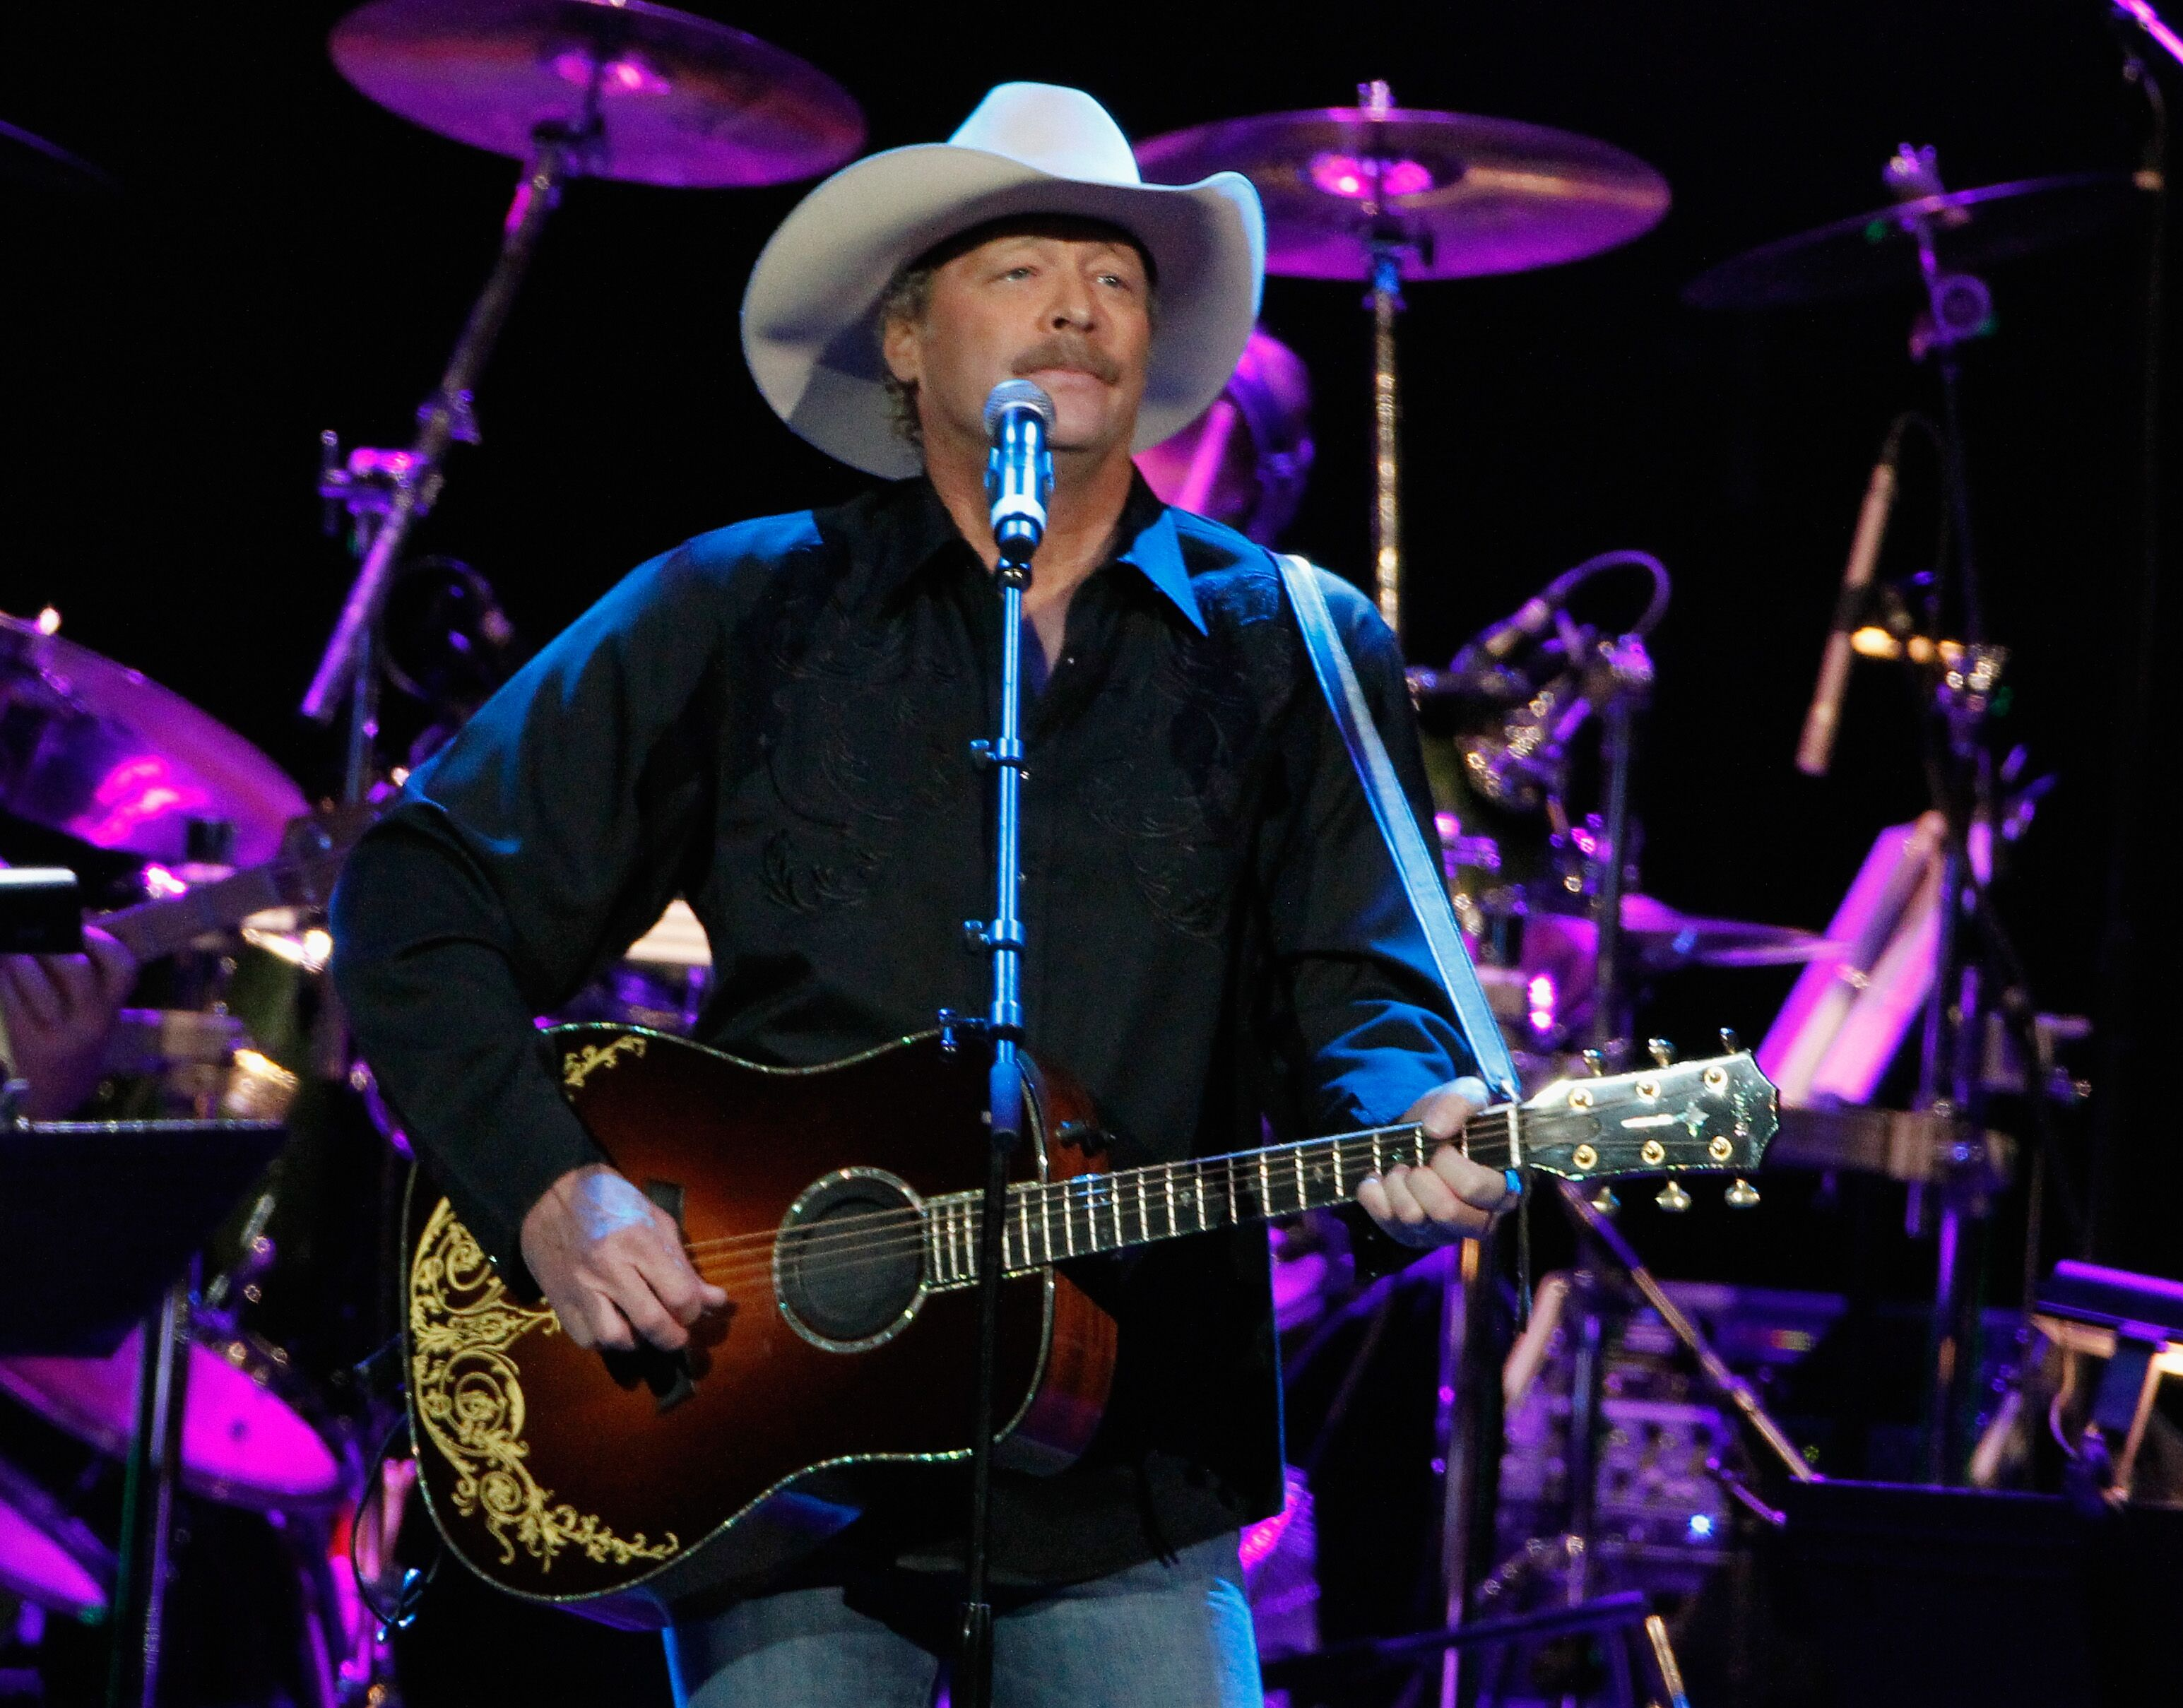 Alan Jackson performs during Playin' Possum! The Final No Show Tribute To George Jones - Show at Bridgestone Arena on November 22, 2013 in Nashville, Tennessee. | Source: Getty Images